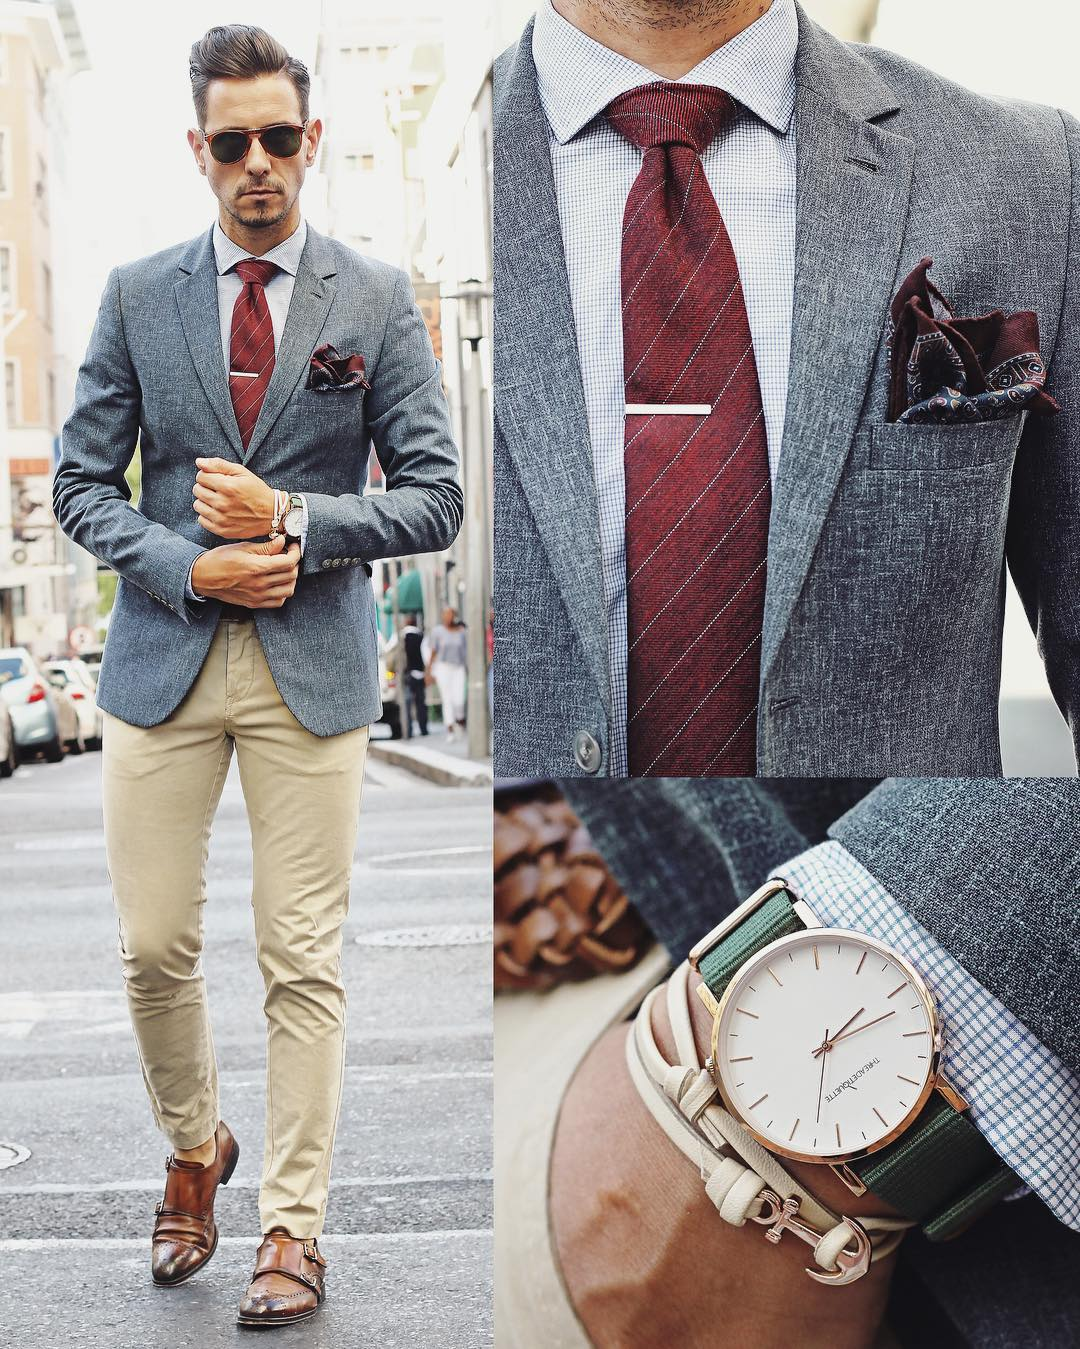 Suit, Accessories And Watch Combinations For Men